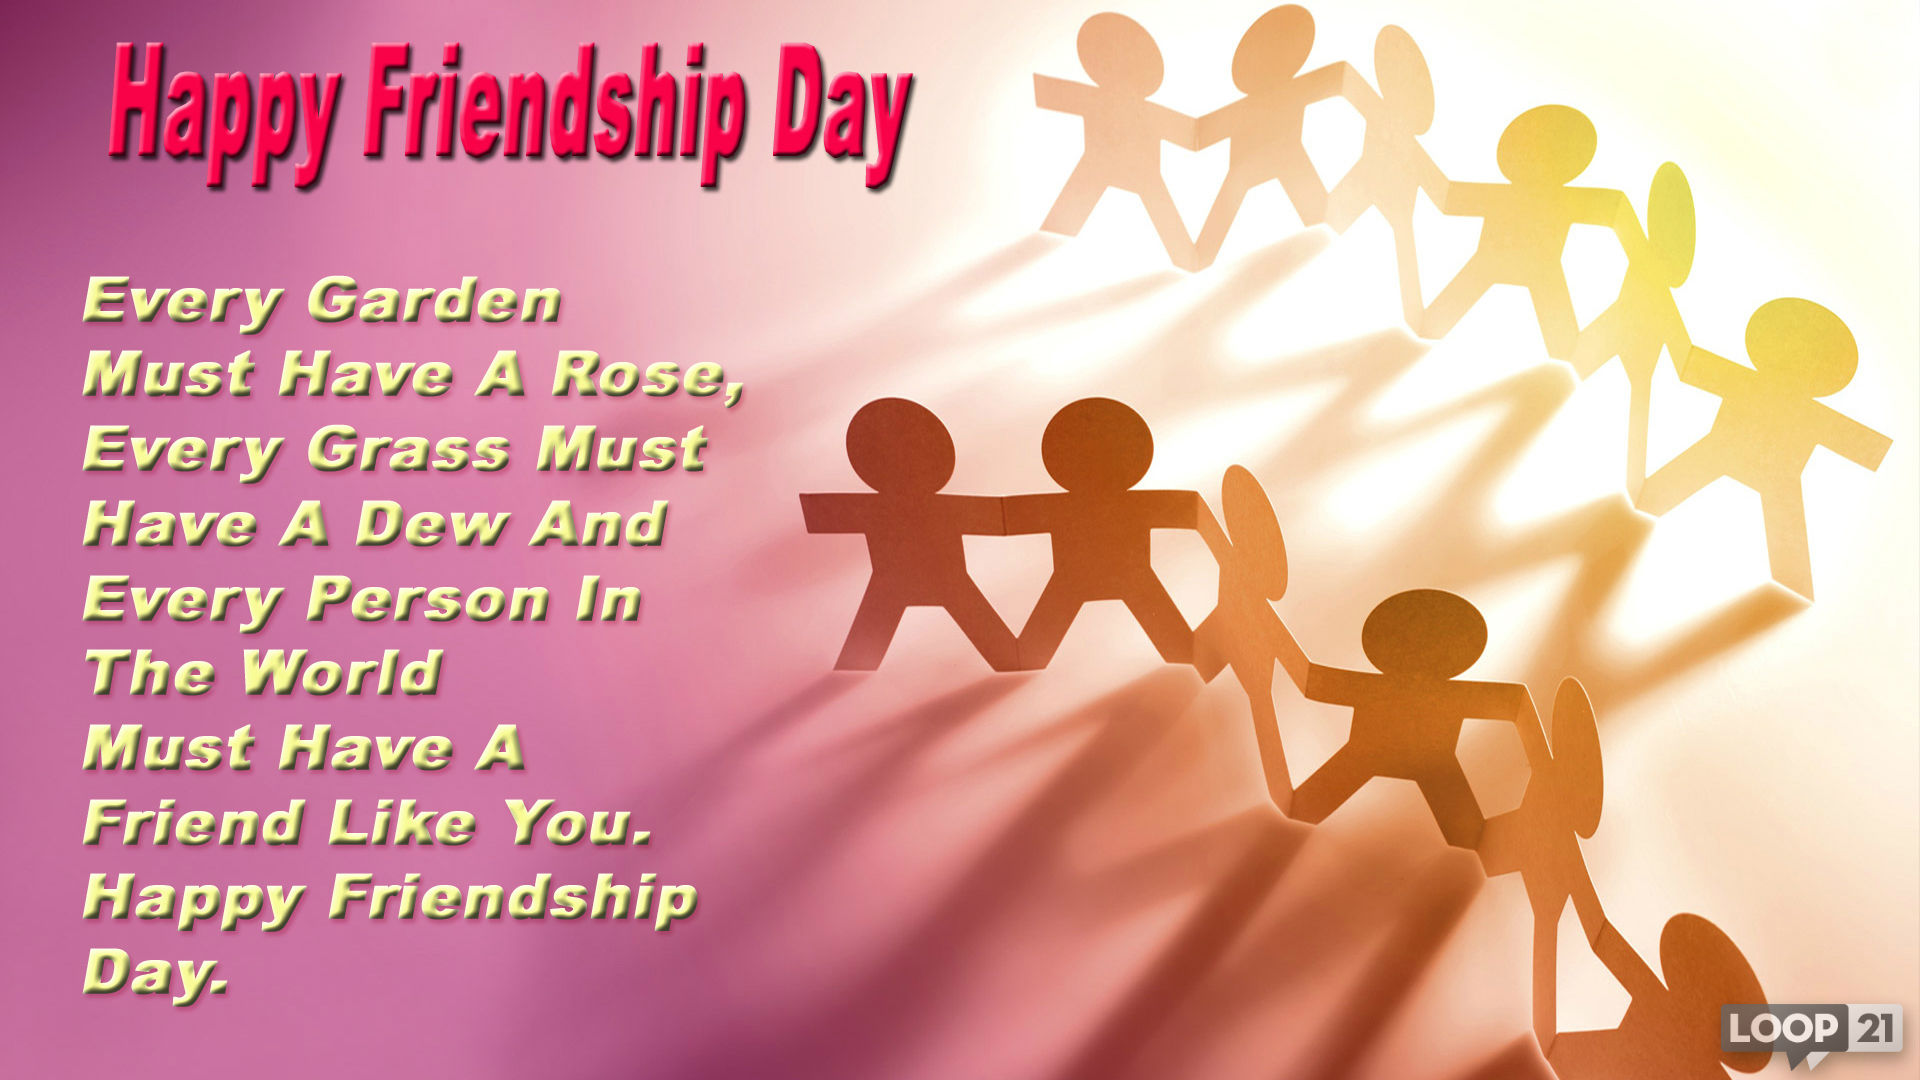 A Quote About Friendship Friendship Day Quote Pictures Photos And Images For Facebook